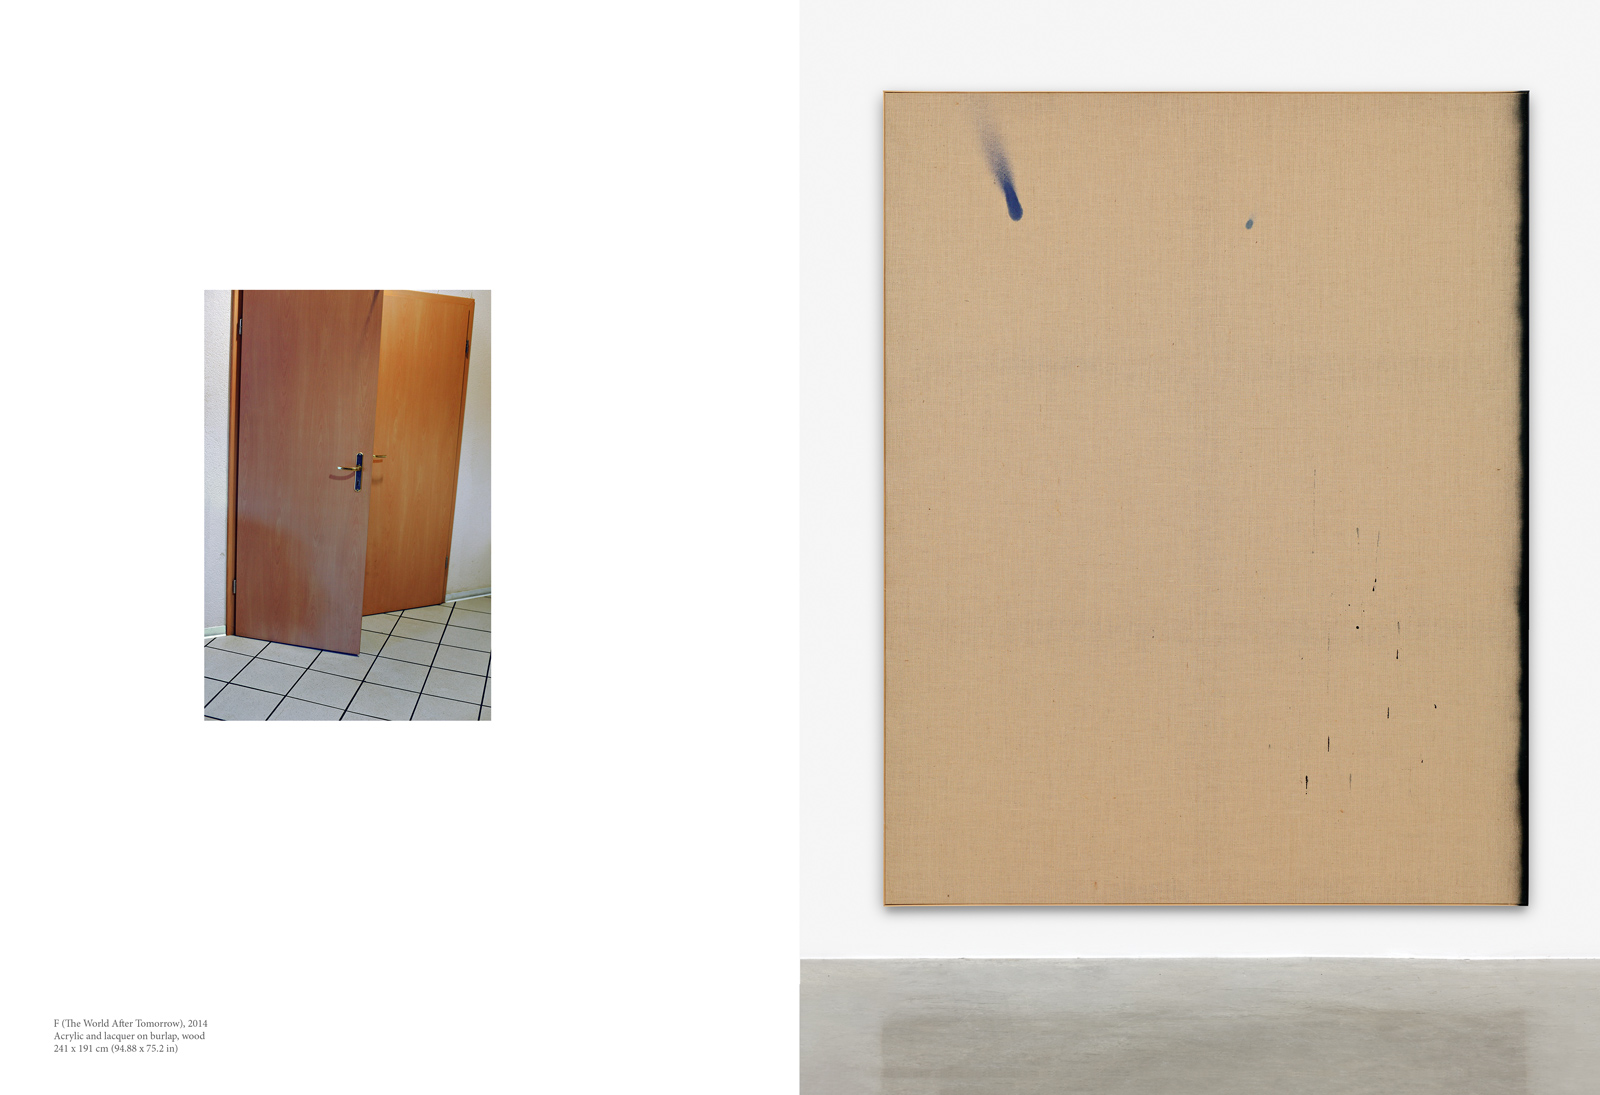 David Ostrowski, F (The World After Tomorrow), 2014, Acrylic and lacquer on burlap, wood, 241 x 191 cm